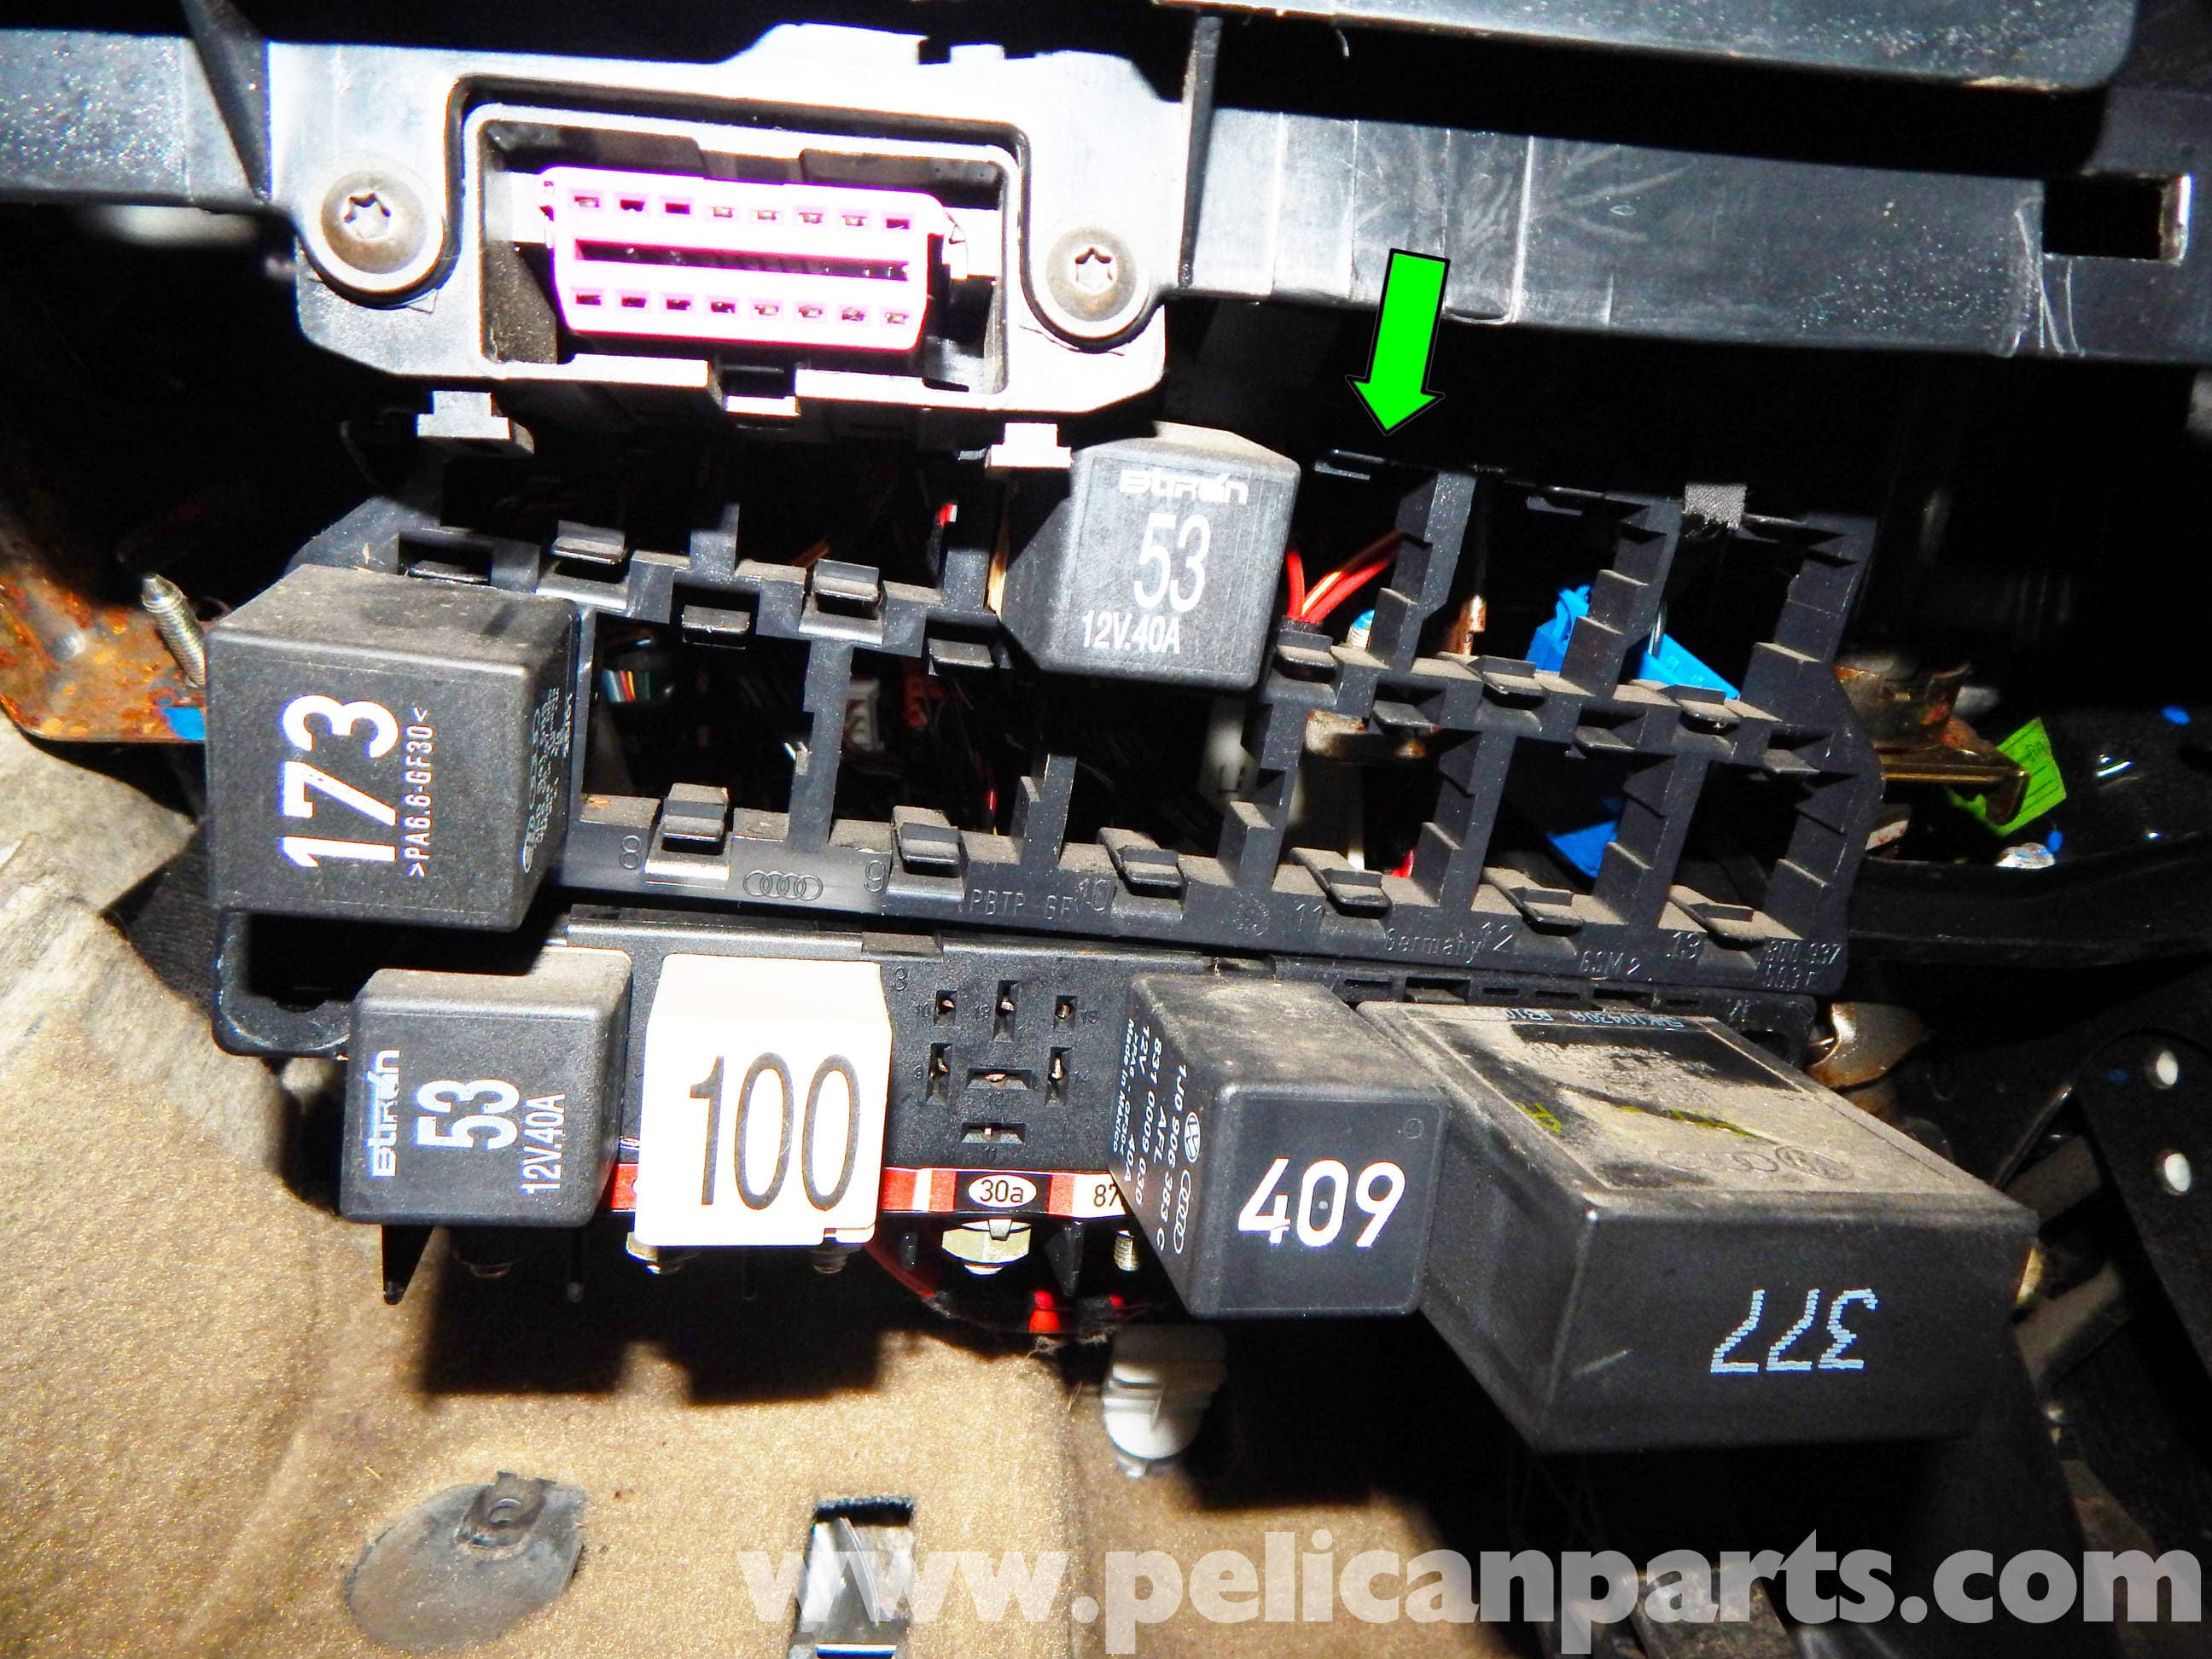 Volkswagen Jetta Mkiv Relay Panel Access And Replacement 1999 2003 Instrument Cluster Fuse Box Diagram Large Image Extra